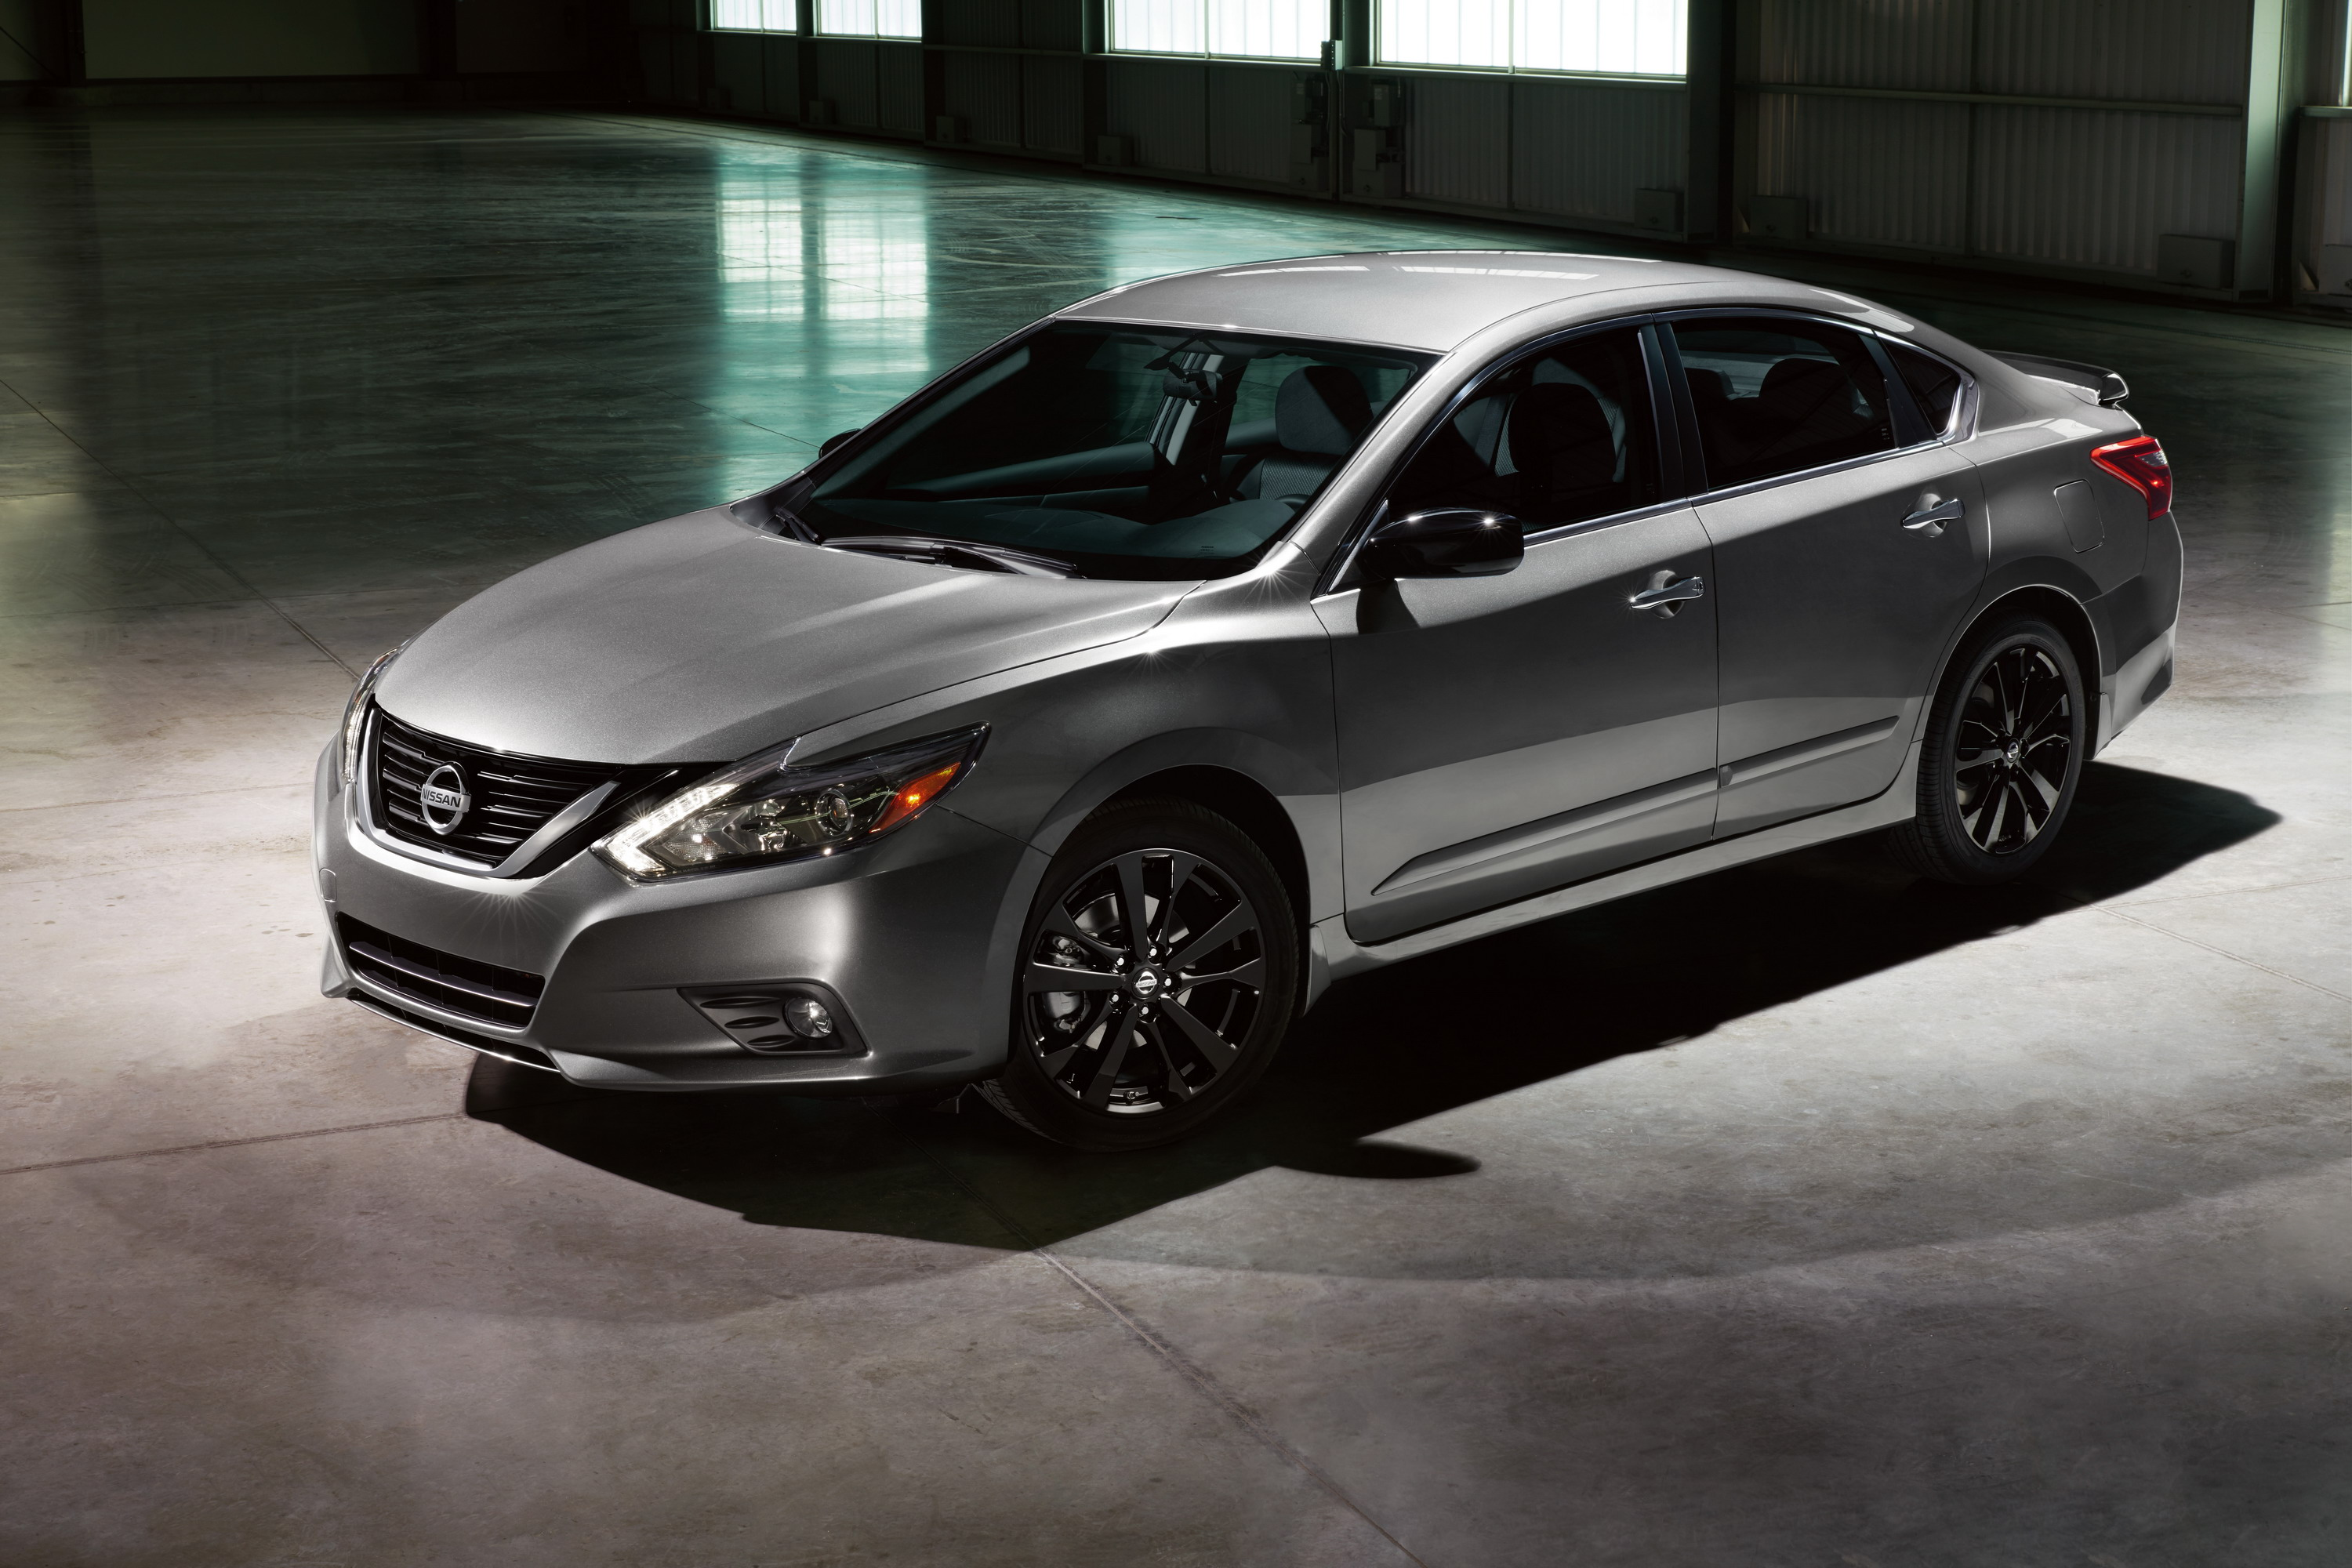 size altima larger forums forum for discussion aftermarket name radio version click new img nissan views review image